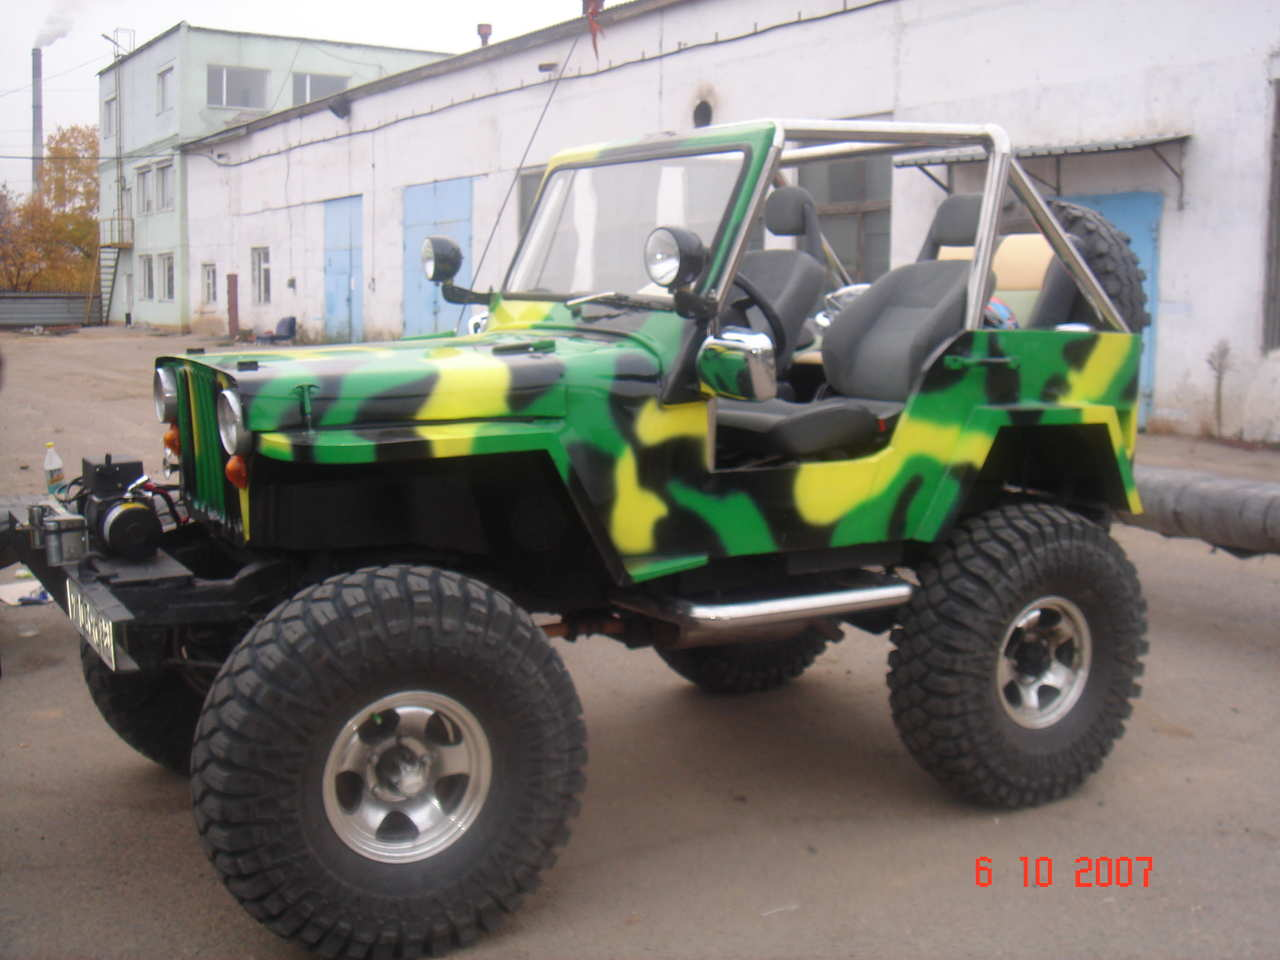 Jeep Wrangler For Sale Ontario >> 1944 JEEP Wrangler Photos, 2.0, Gasoline, Automatic For Sale